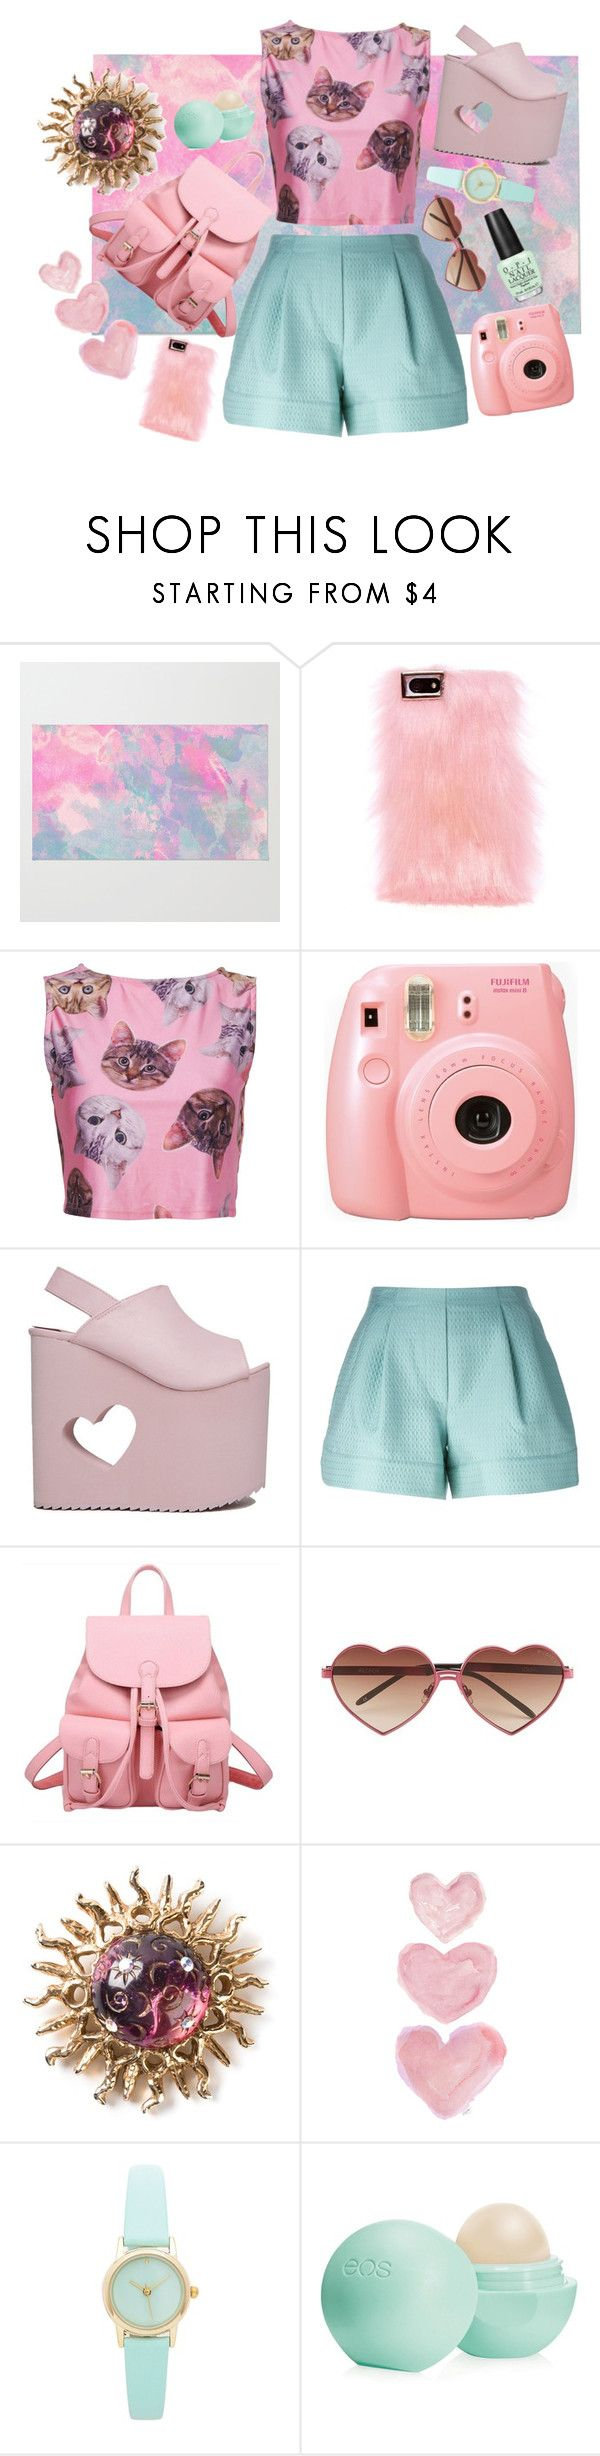 """""""Untitled #4"""" by idaho2 ❤ liked on Polyvore featuring Skinnydip, Fujifilm, Nikki Lipstick, 3.1 Phillip Lim, Wildfox, Claire Deve, Shabby Chic, Eos and OPI"""